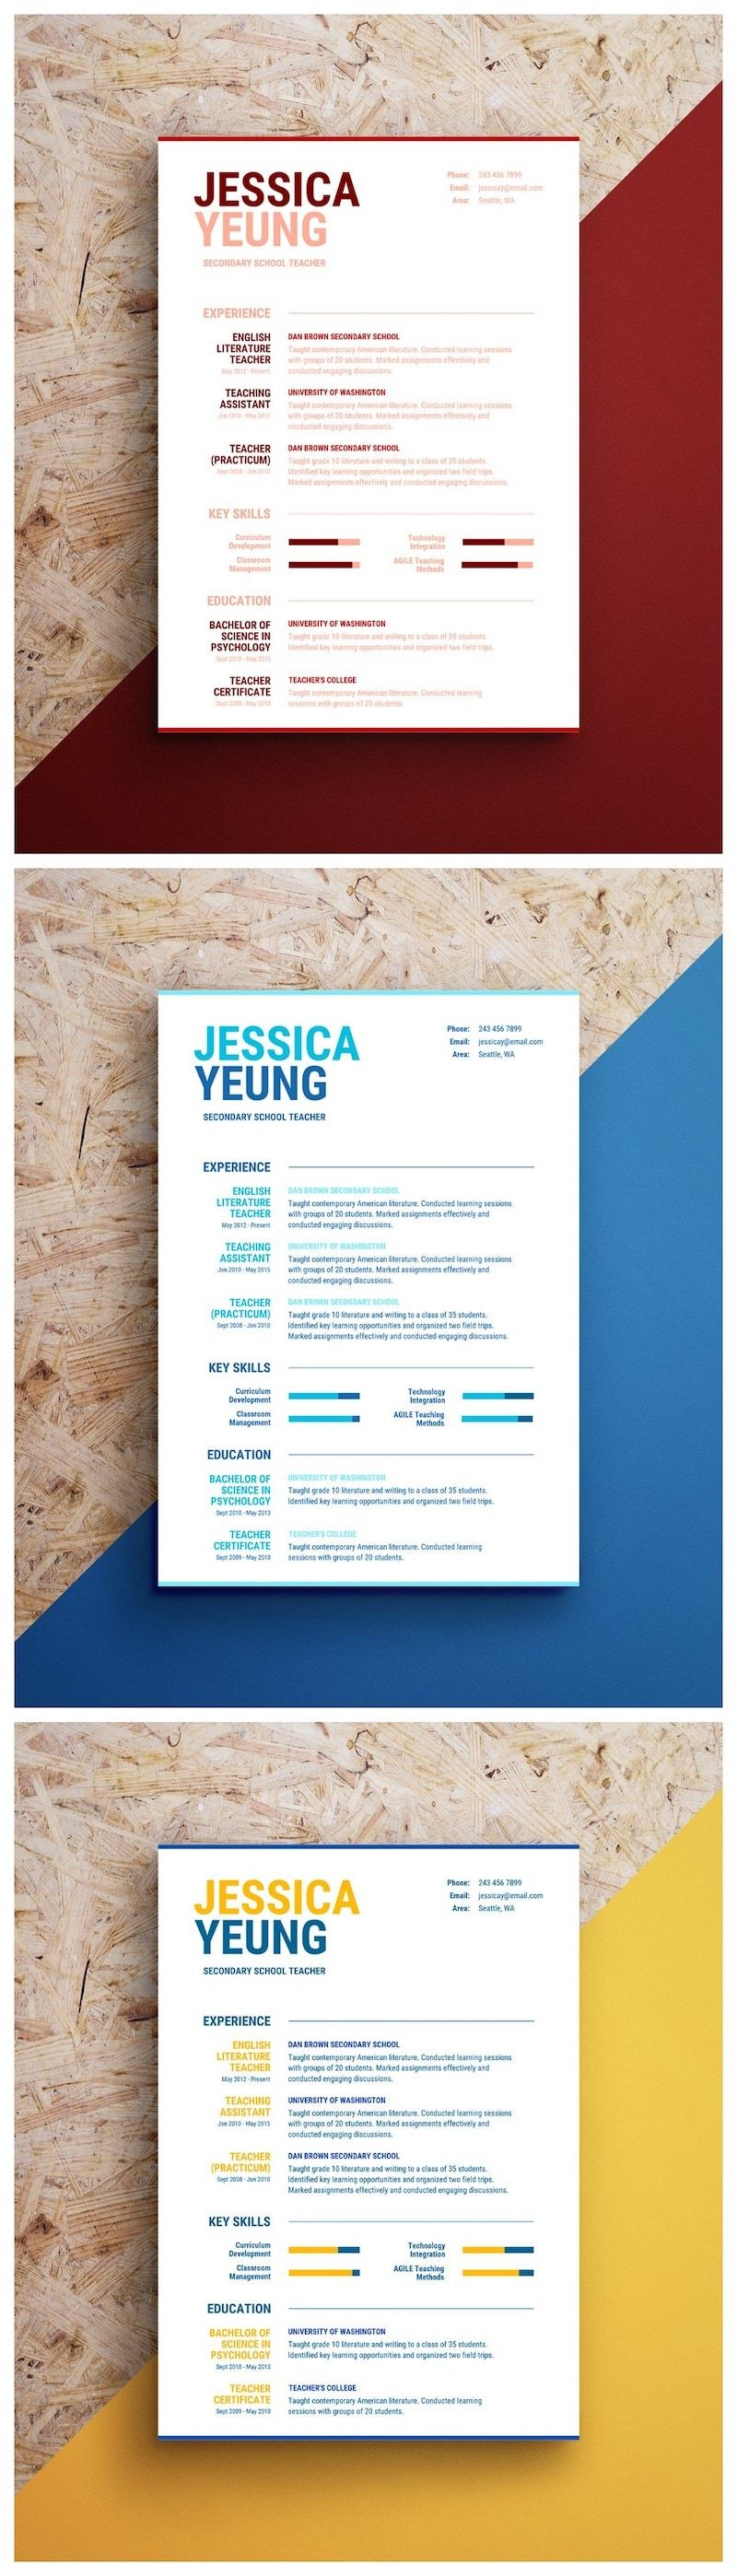 15 Resume Design Tips Templates Examples Design A Traditional Resume That Employe Infographic Resume Template Resume Design Template Infographic Resume